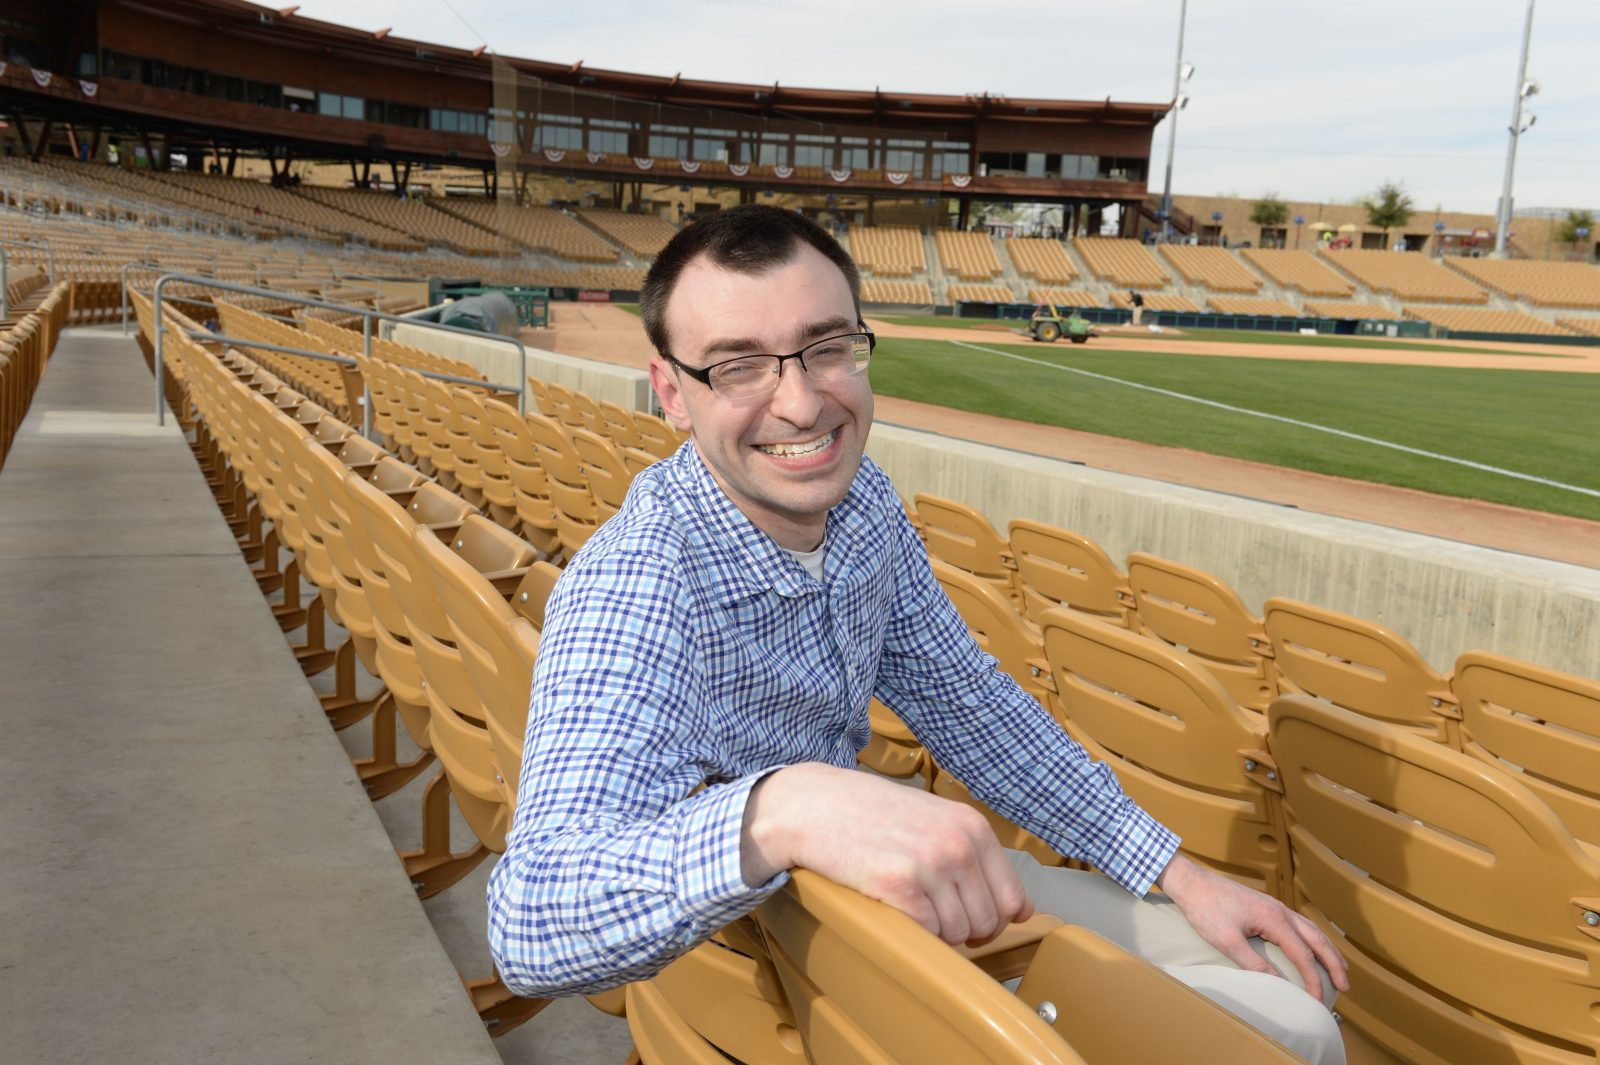 Jason Benetti, just finished with his first season as a Chicago White Sox television announcer, at Comiskey Park. (Photo courtesy Ron Vesely)